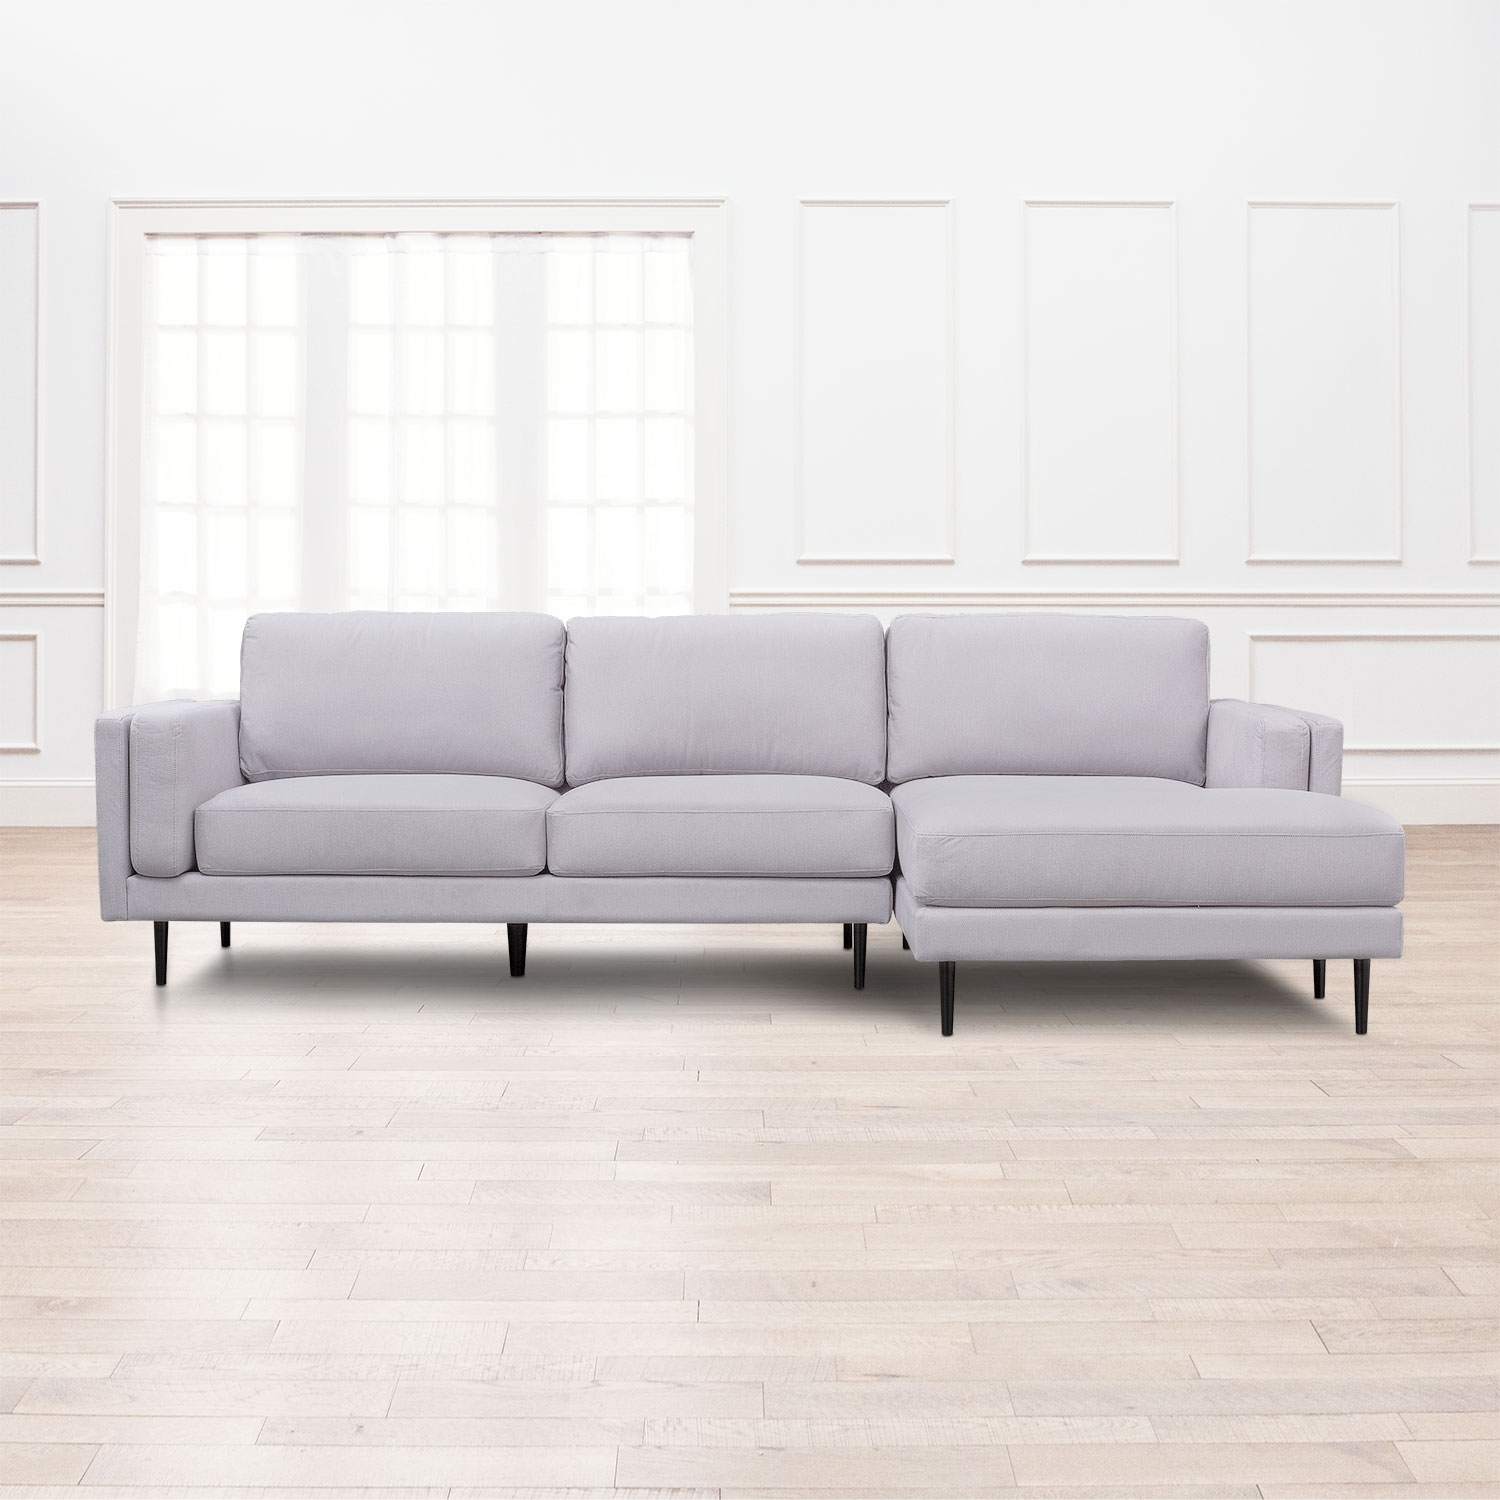 West End 2 Piece Sectional With Right Facing Chaise – Light Gray With Mcdade Graphite 2 Piece Sectionals With Laf Chaise (View 6 of 25)